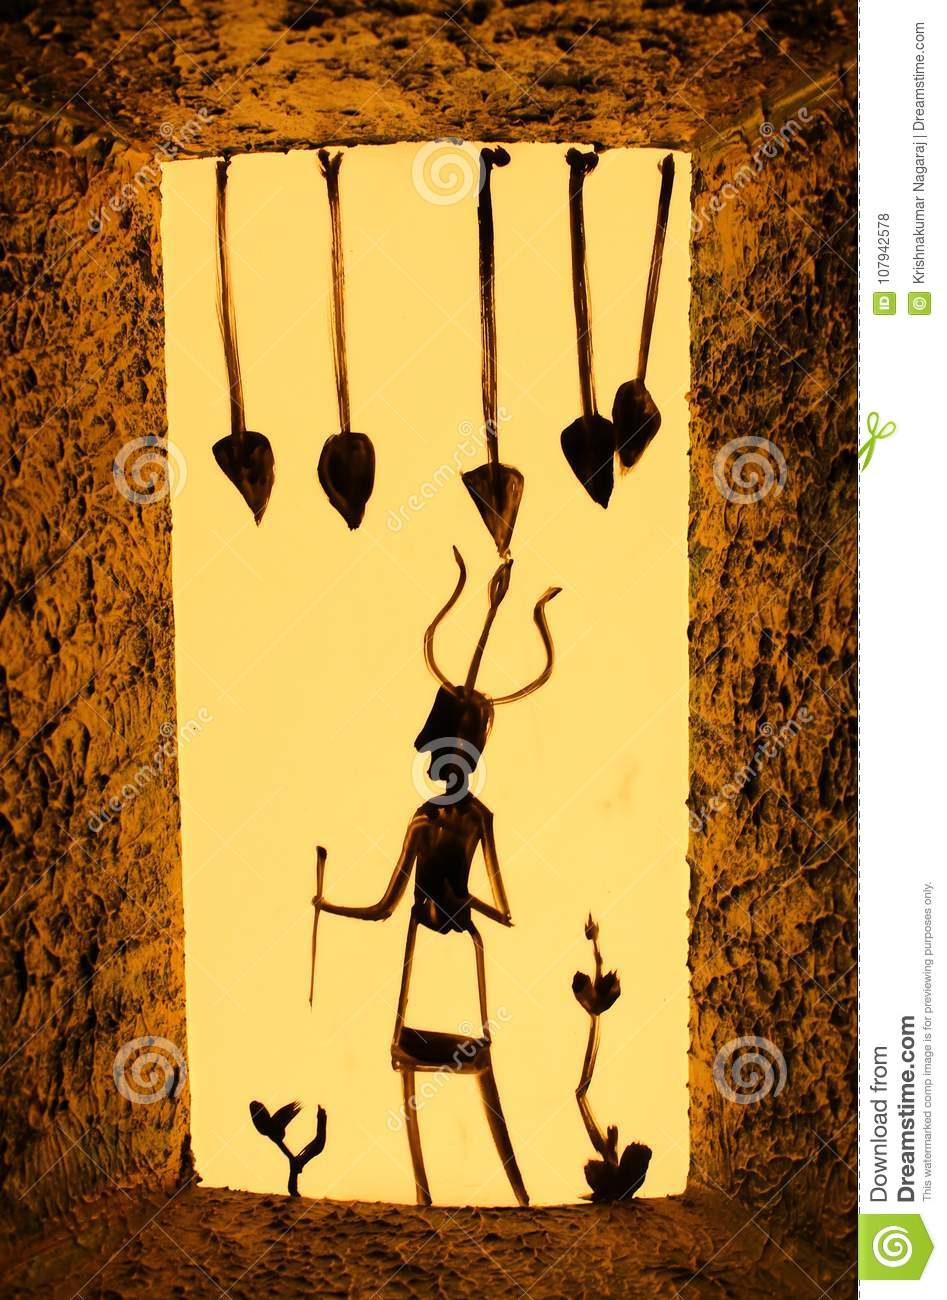 Ancient Wall decor stock photo. Image of antique, egypt - 107942578